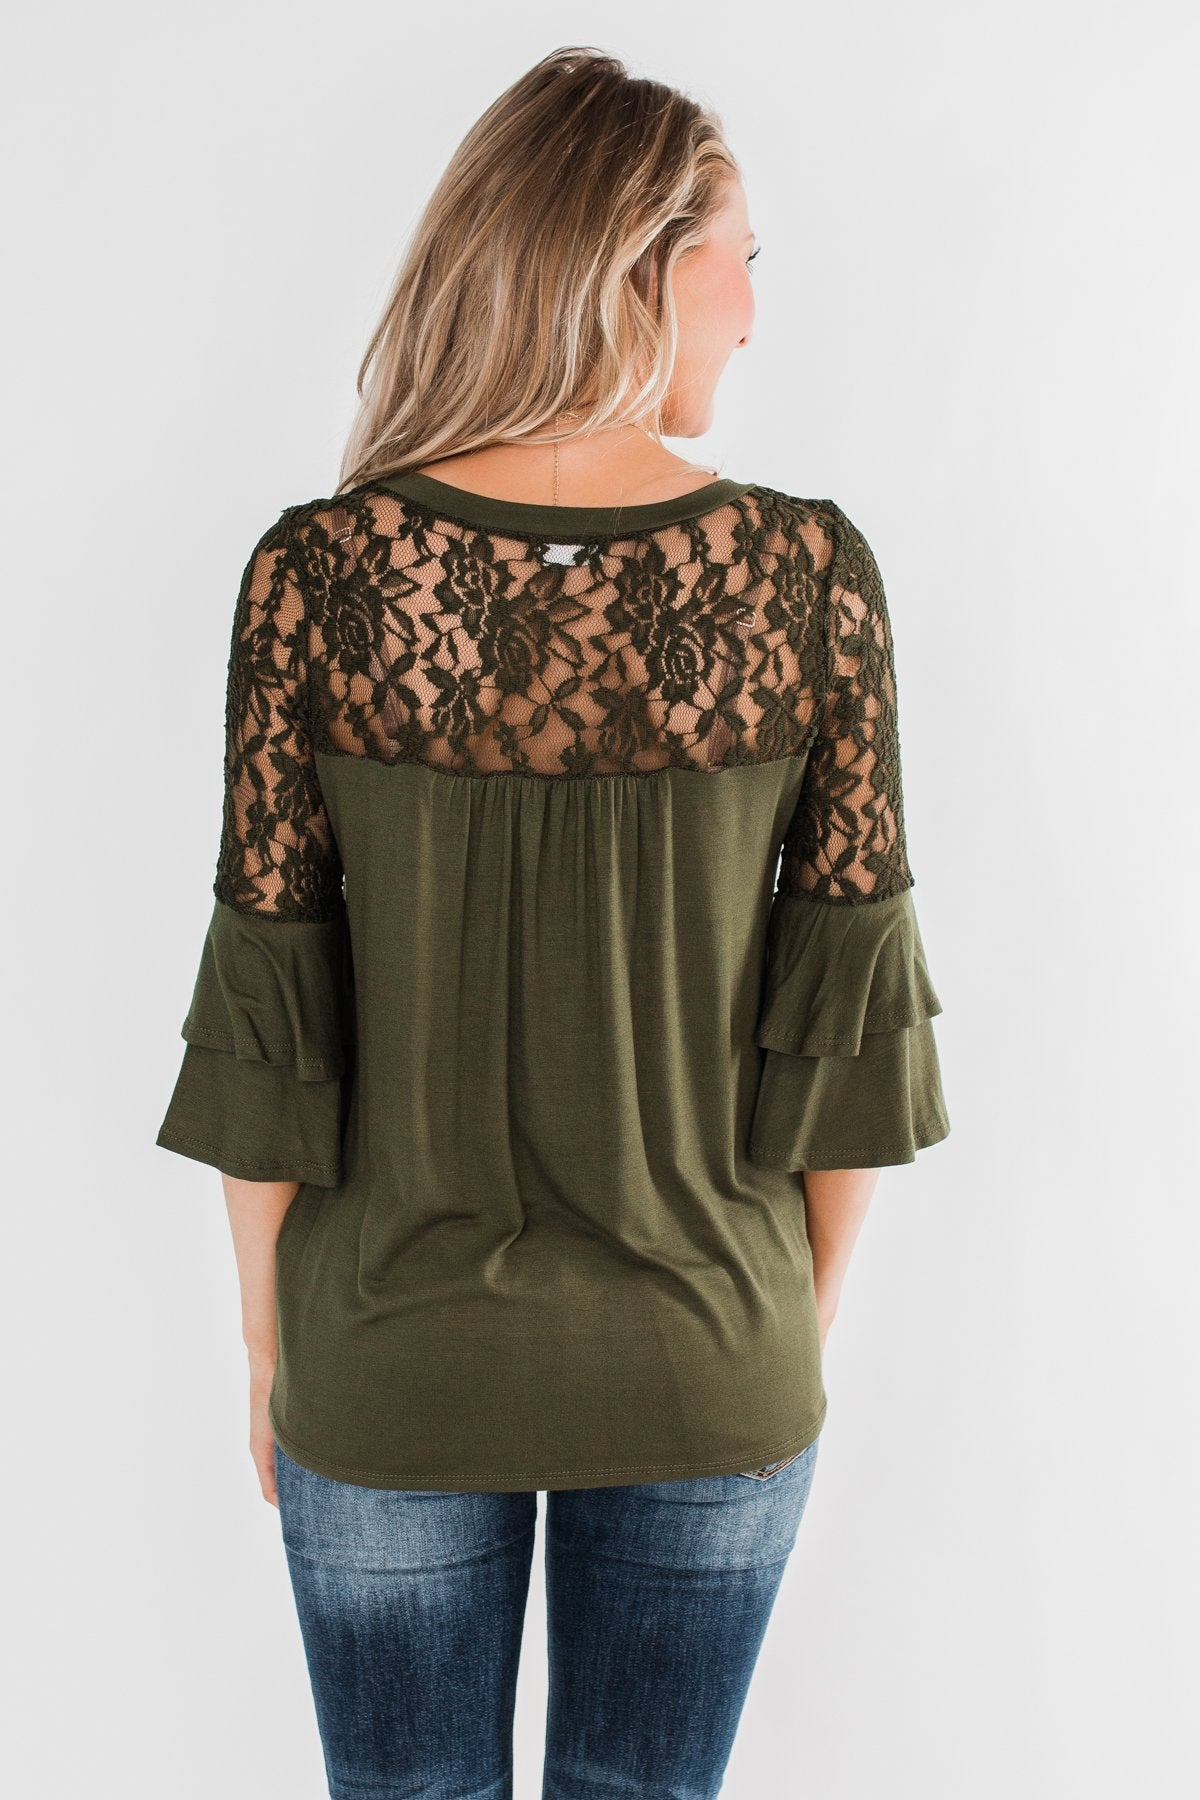 Right Beside Me Lace & Ruffles Top- Olive